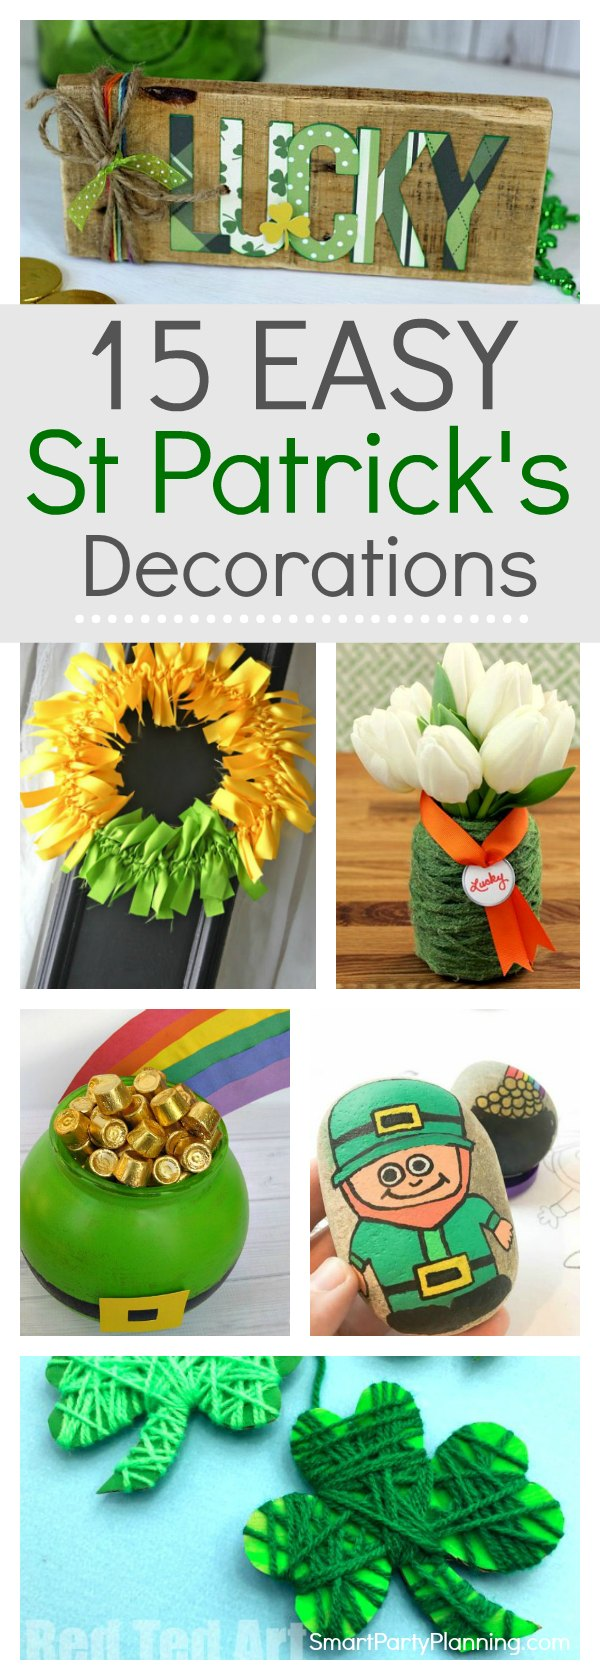 15 St Patrick's Day Decorations